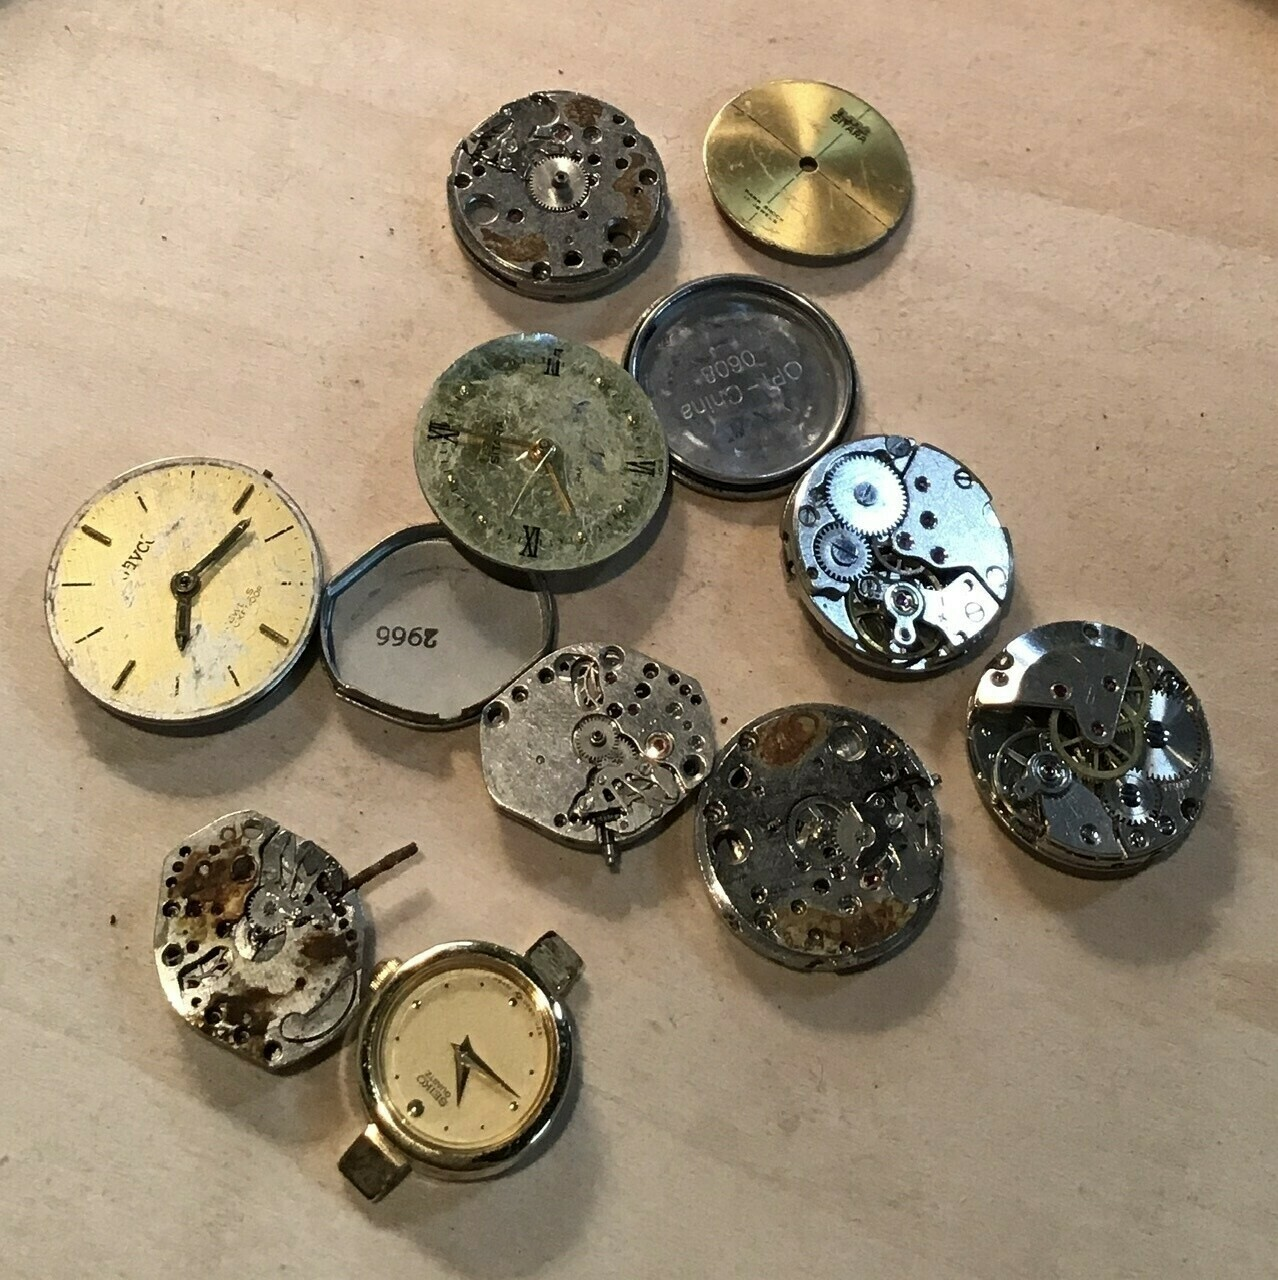 Watch Parts (Gears) / Vintage / #9